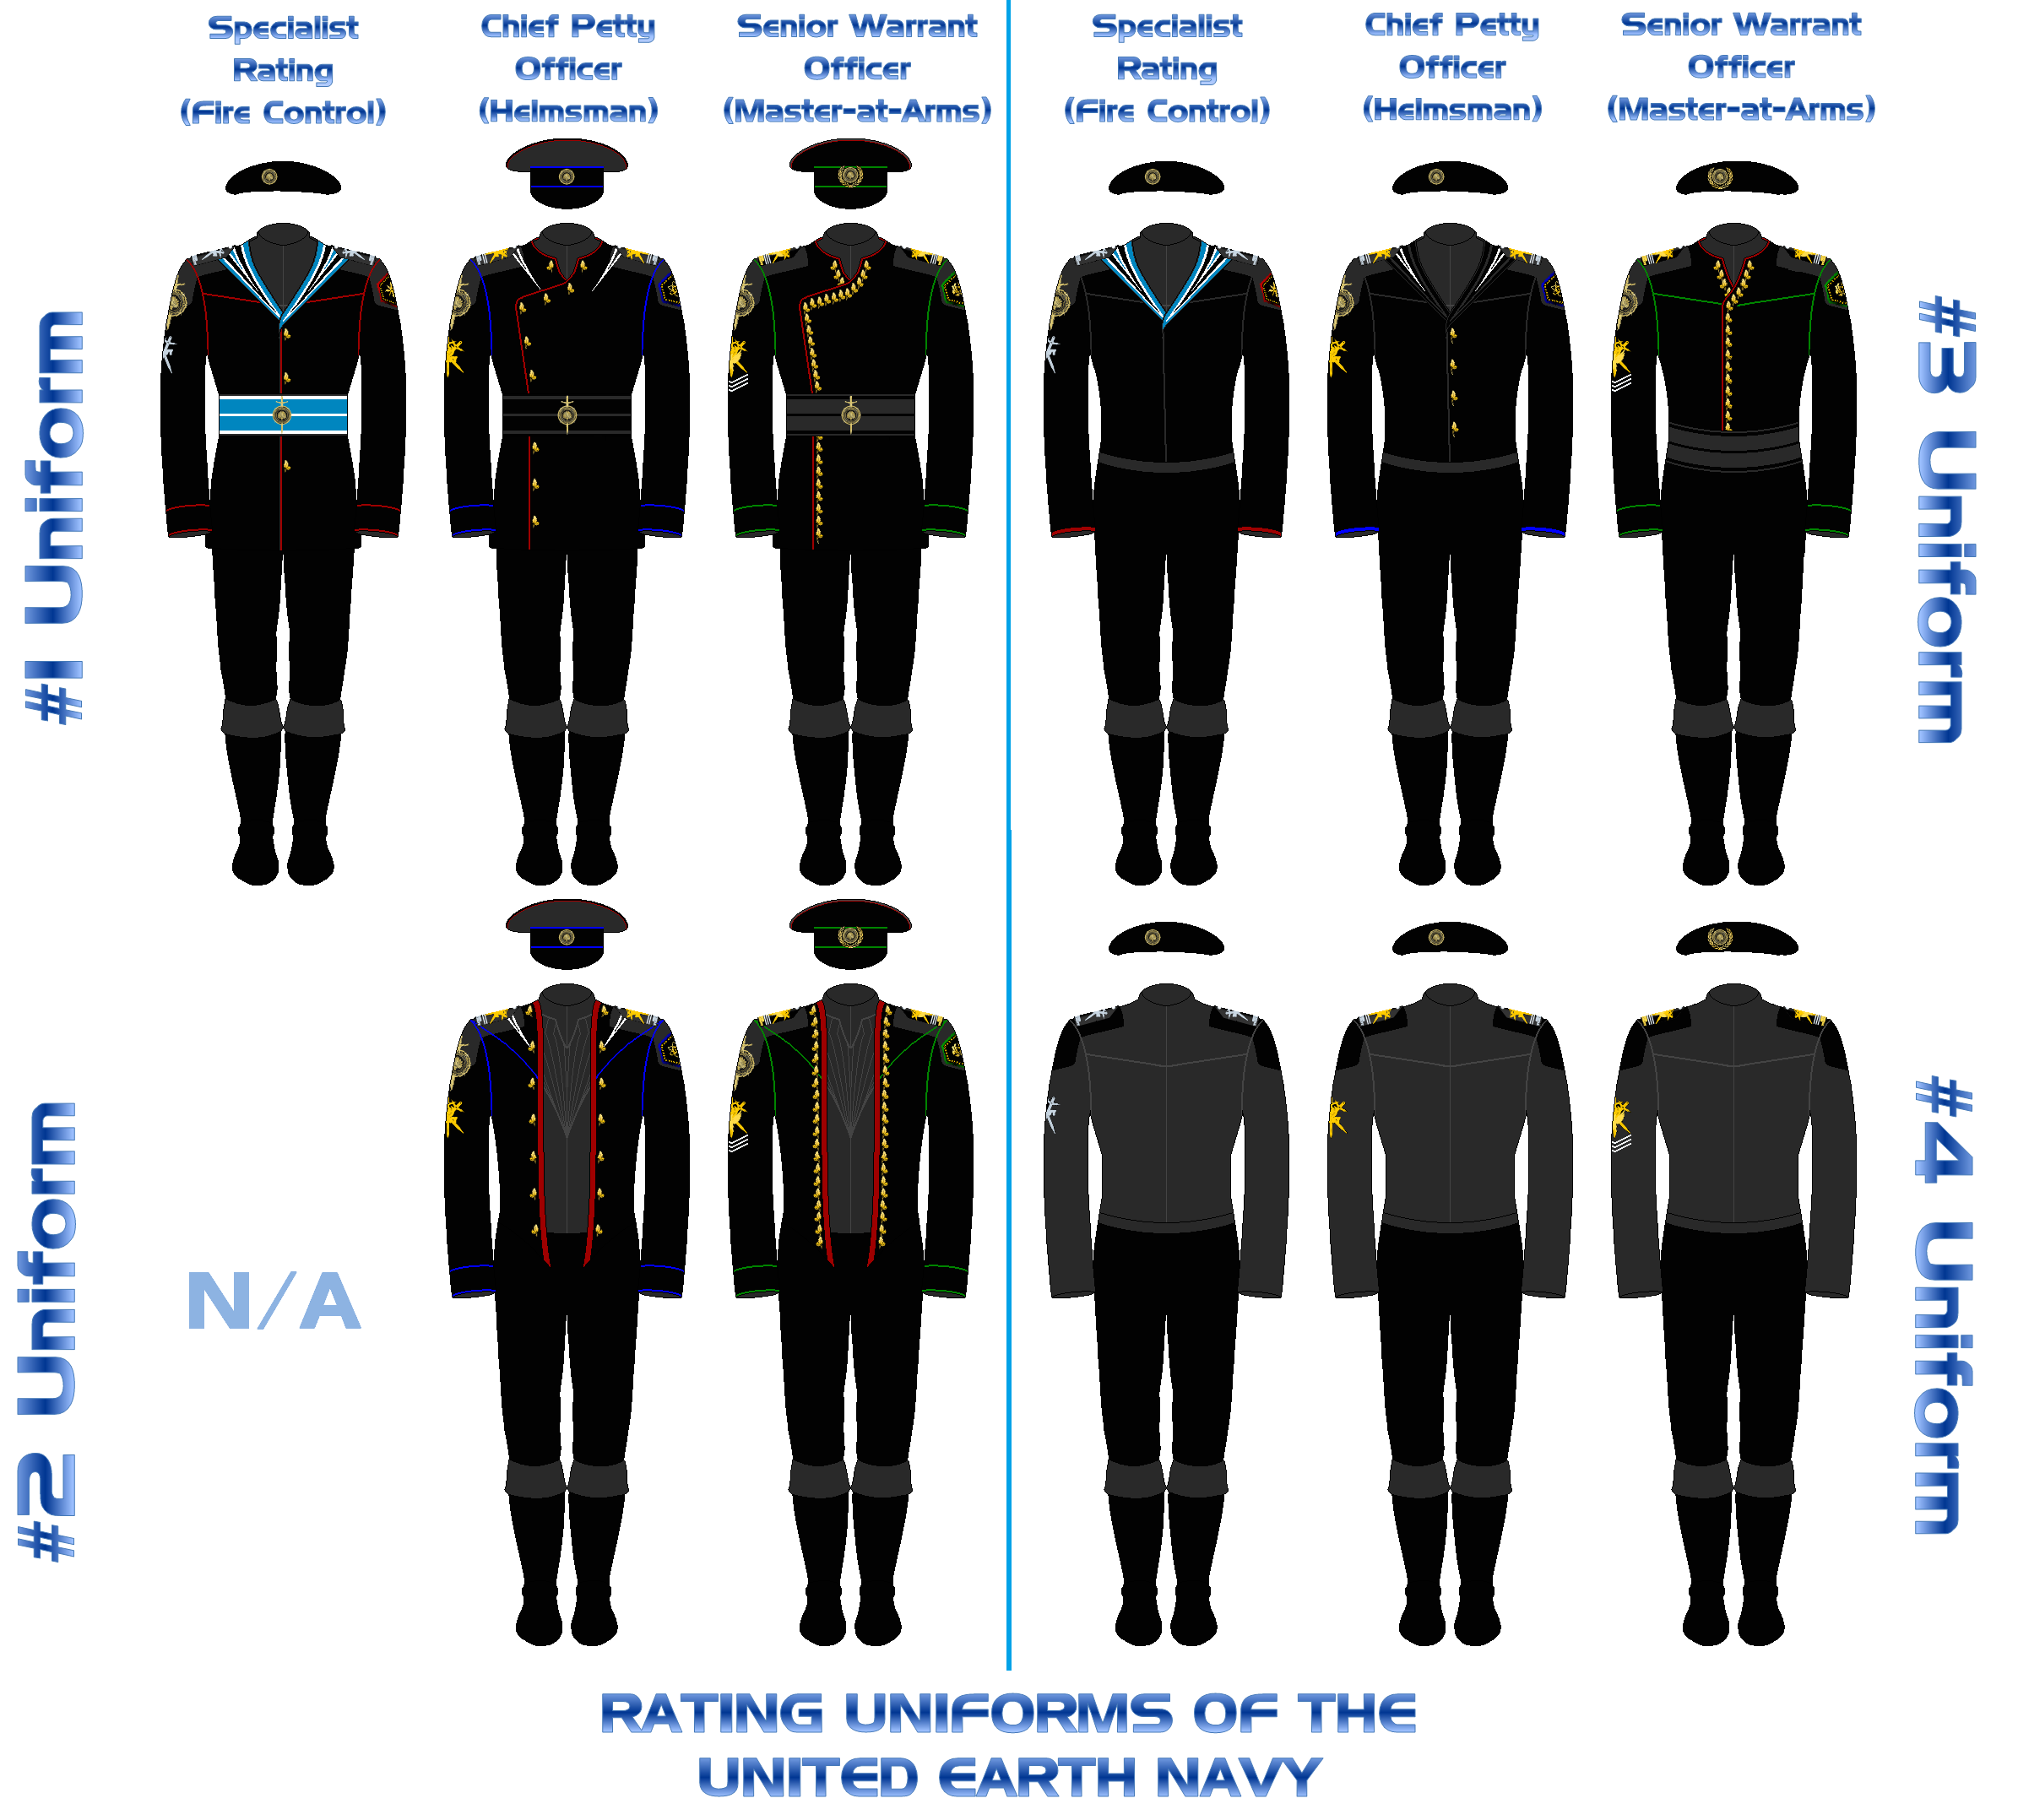 Line Art Uniform : A line drawing of selection officer s uniforms in the